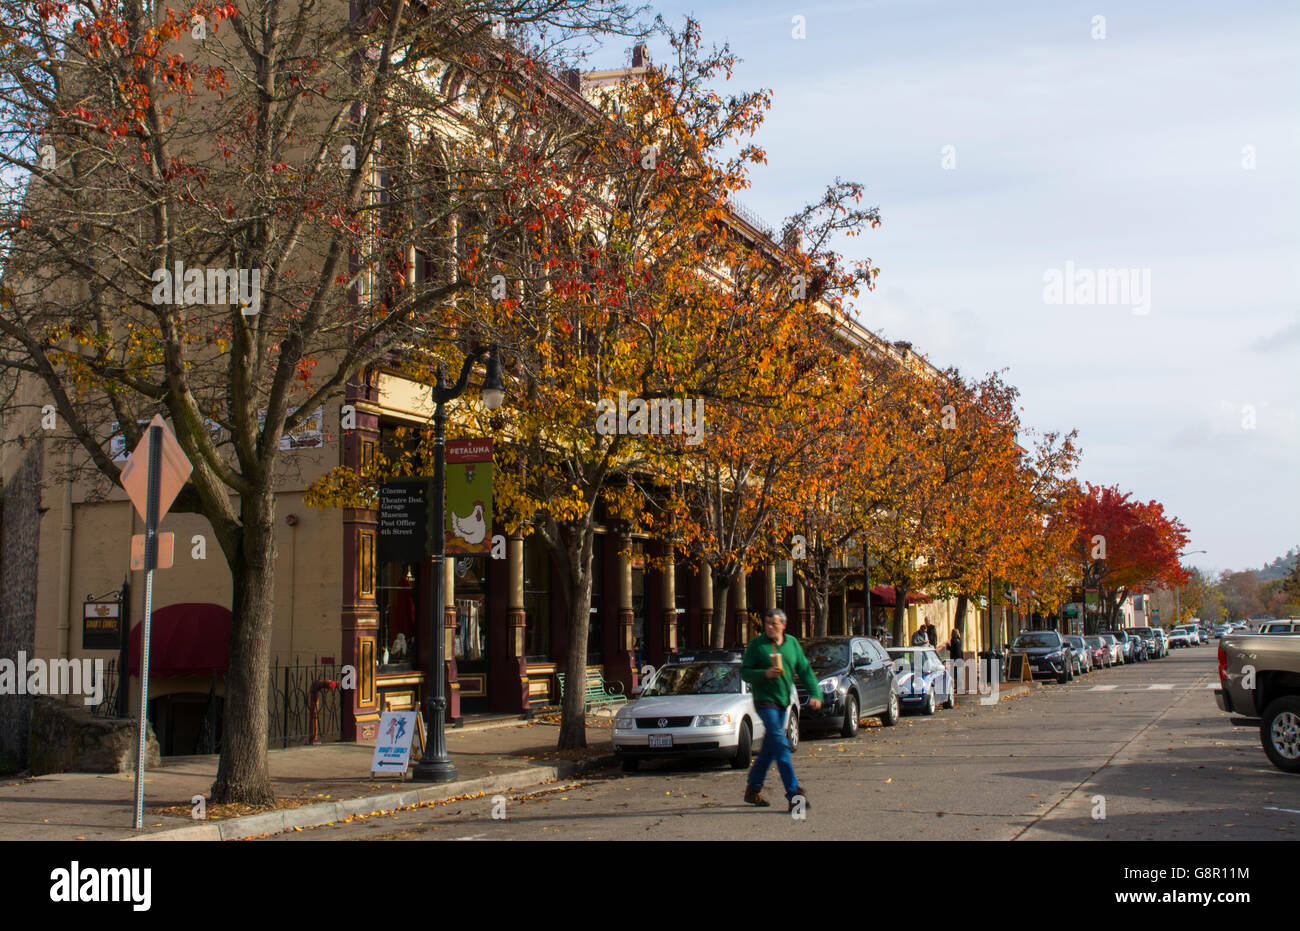 Petaluma California downtown on Kentucky Street and Western Ave with traffic and cars - Stock Image